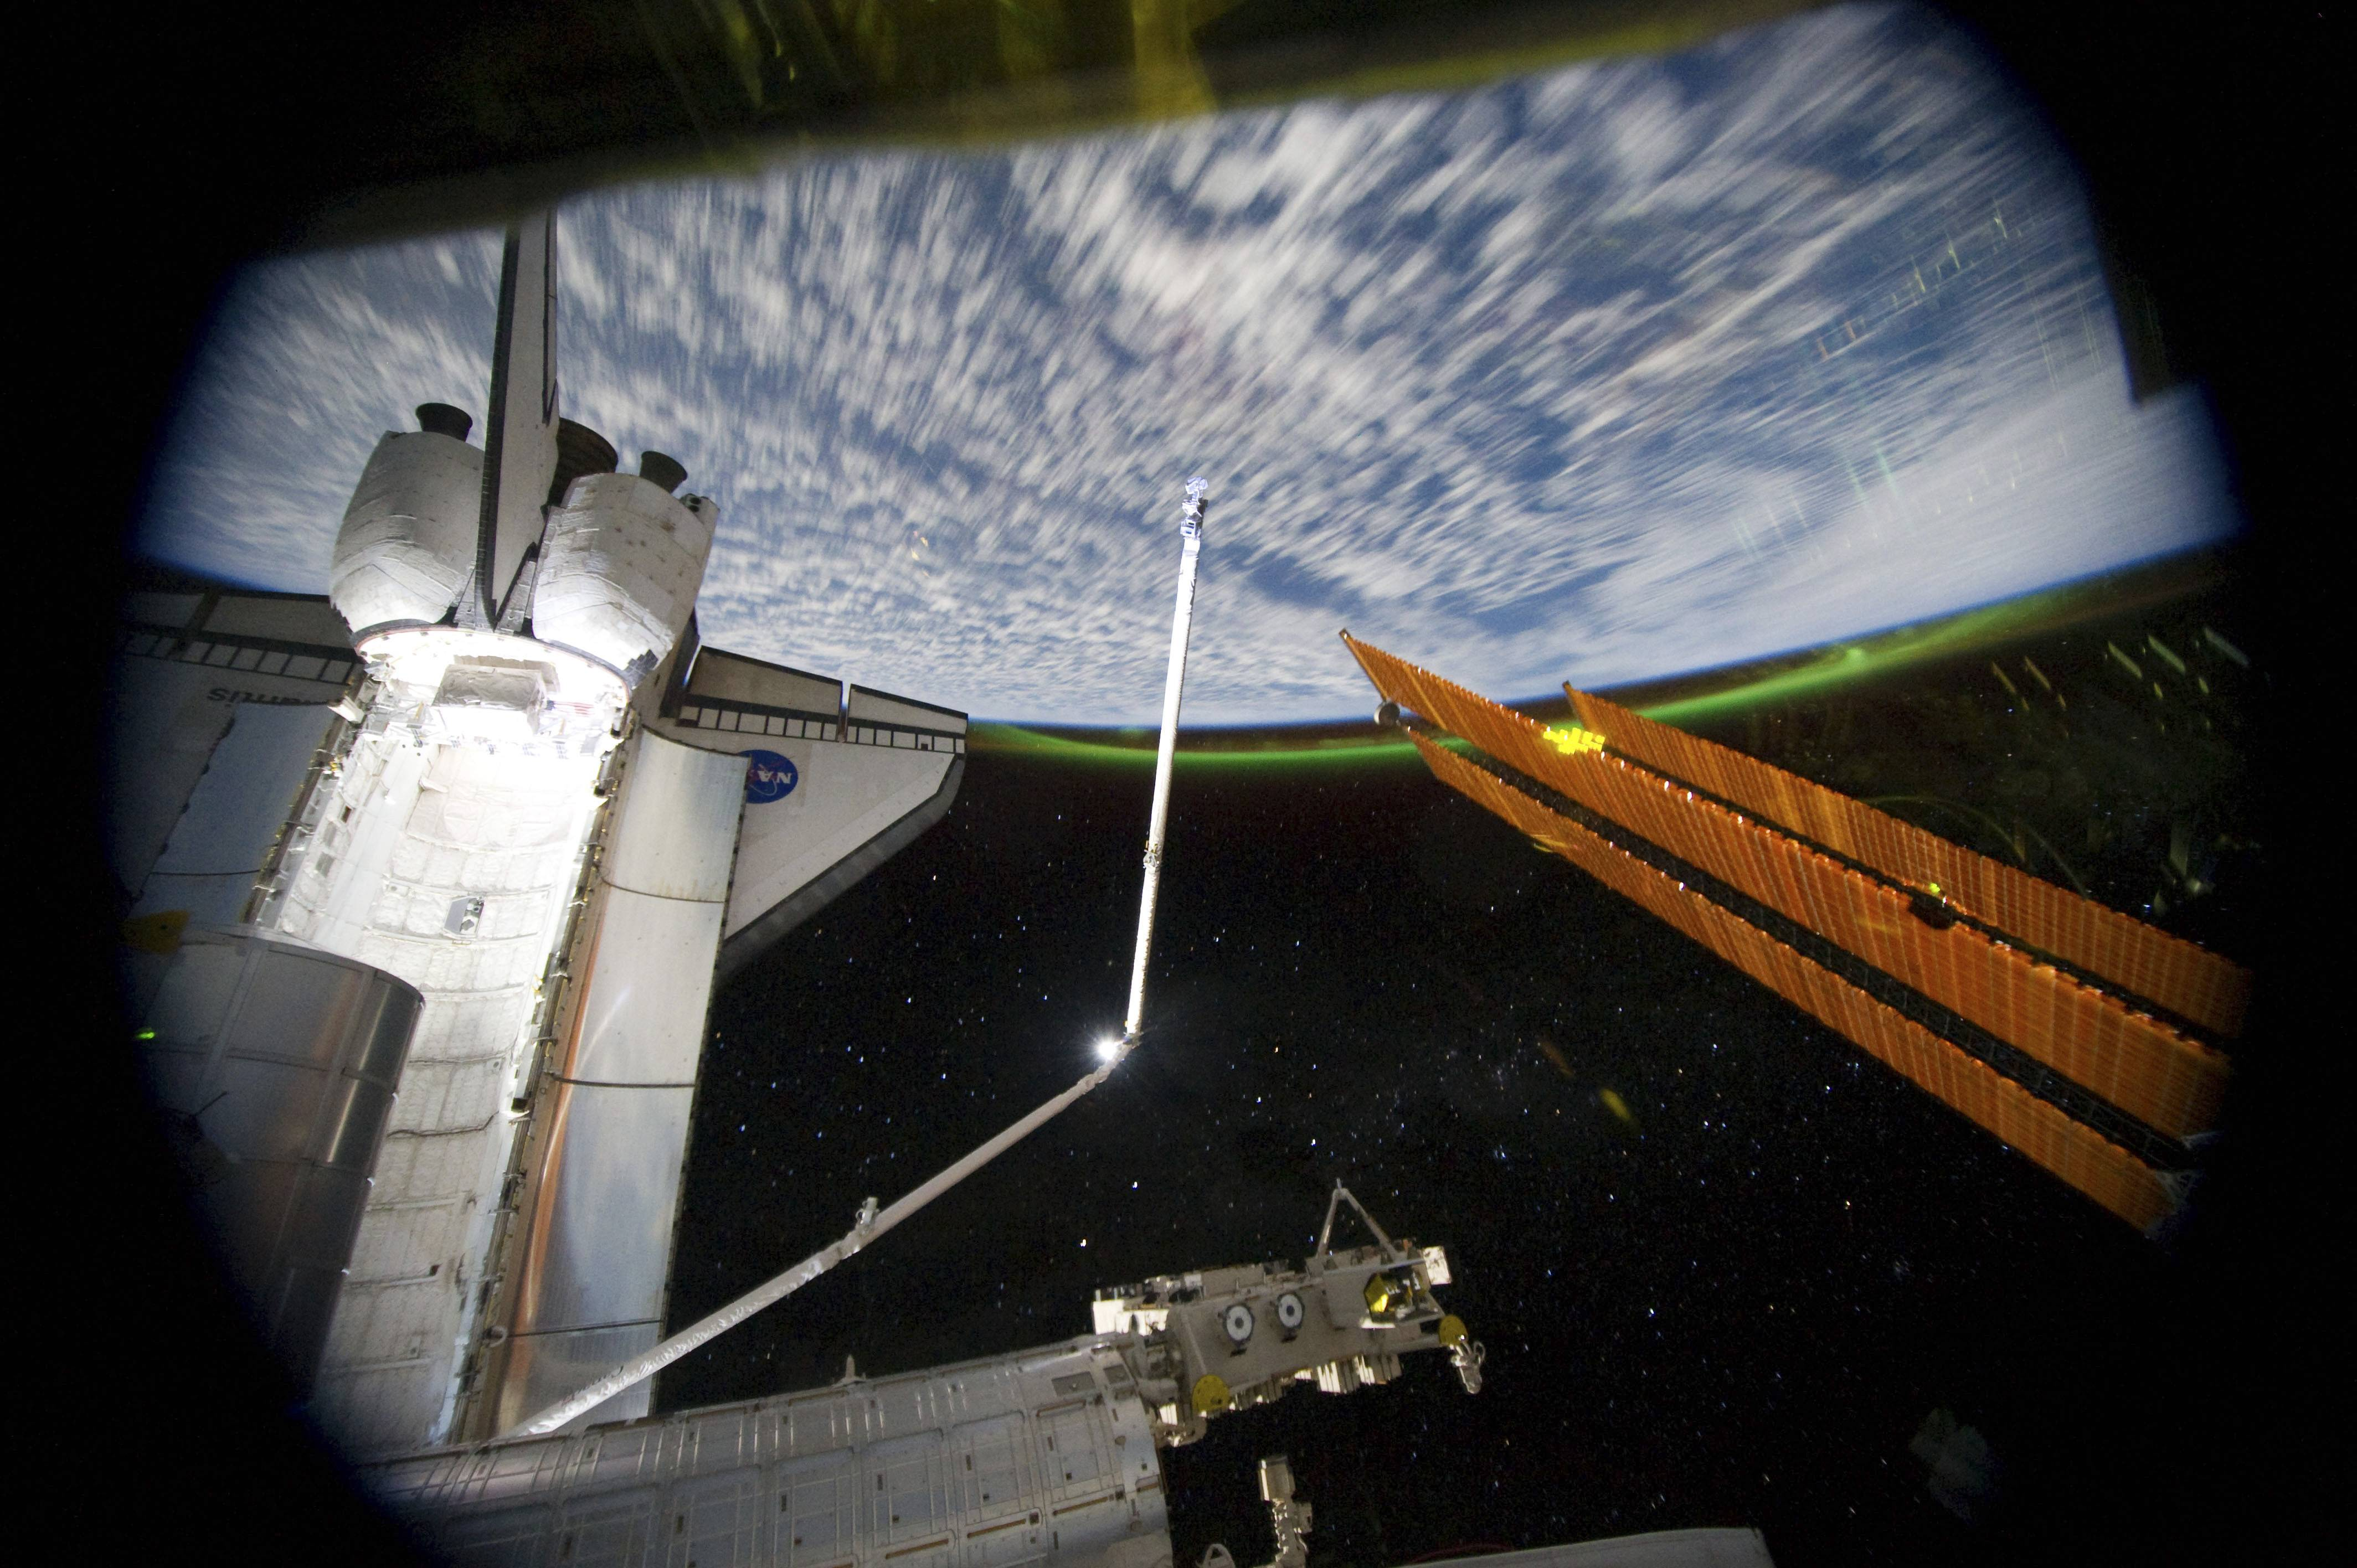 This panoramic view was taken from the International Space Station, looking past the docked space shuttle Atlantis' cargo bay and part of the station including a solar array panel toward Earth. The space shuttle will undock Tuesday for the last time.